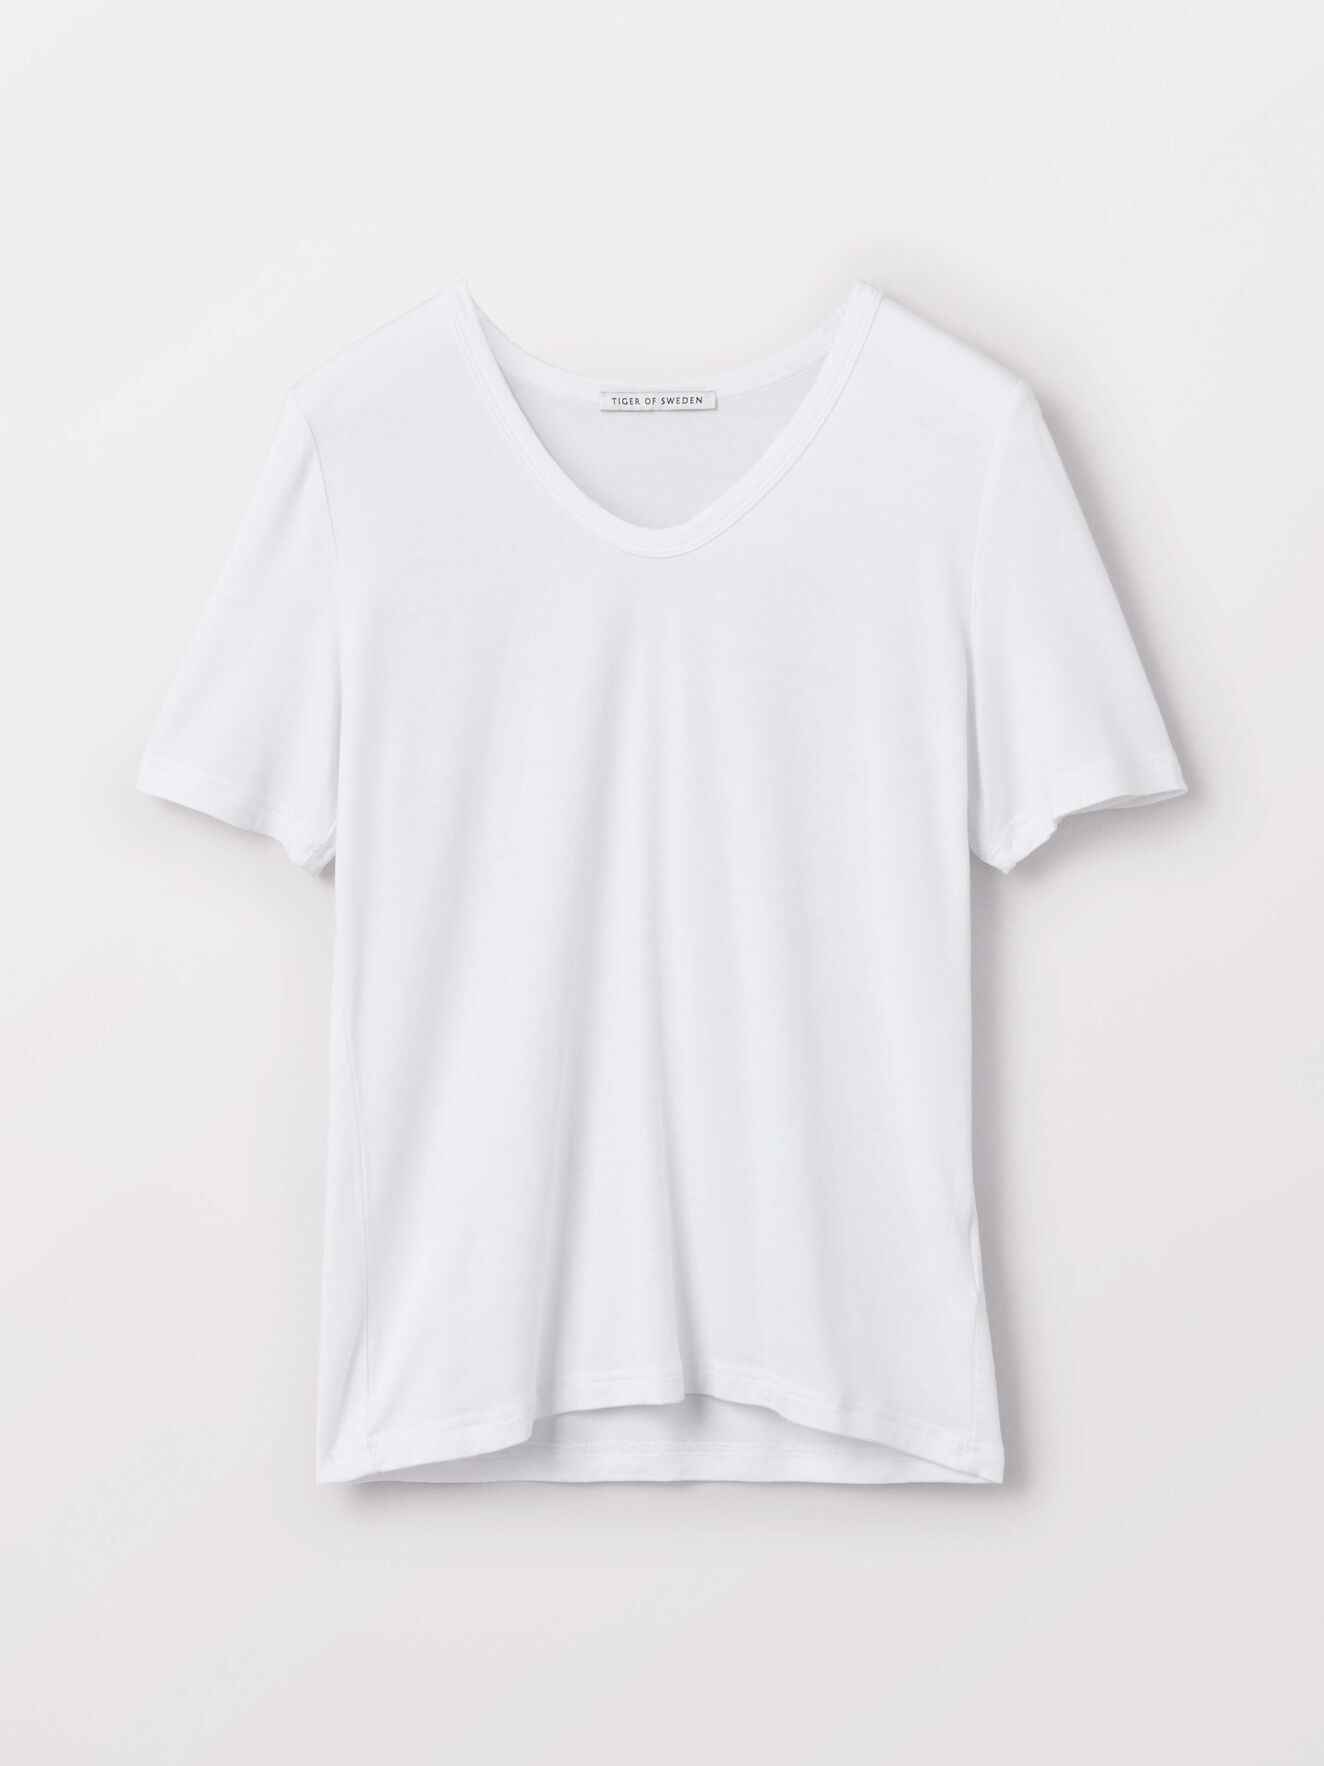 Hapa T-Shirt in Pure white from Tiger of Sweden